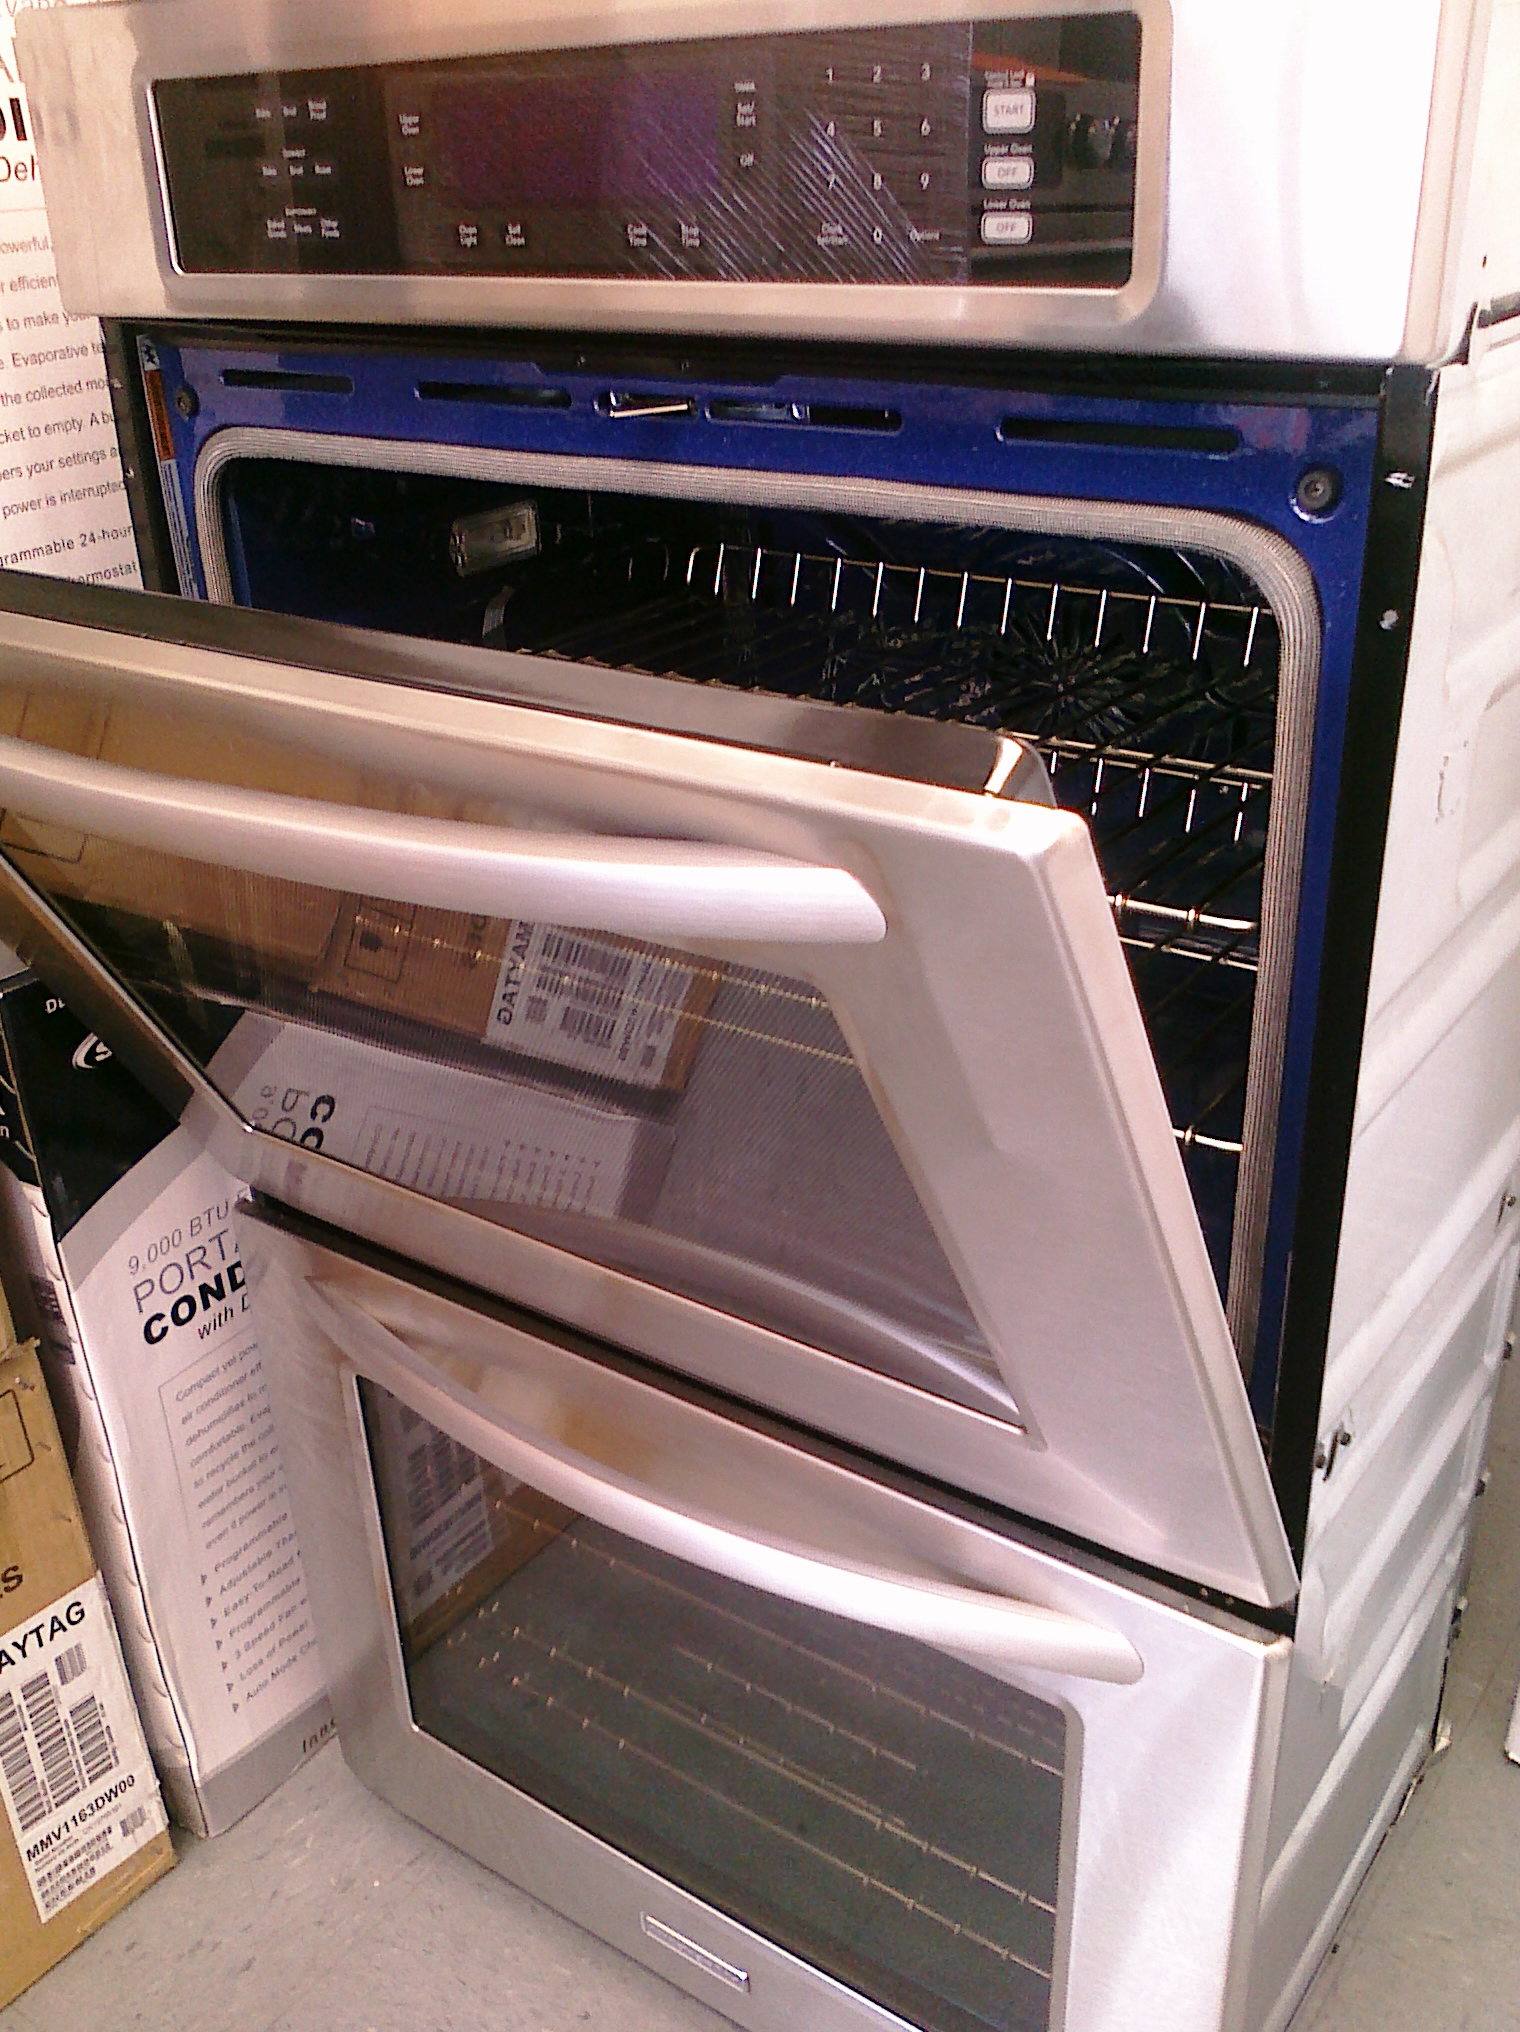 6 kitchen aid kebs208sss 30 double oven convection